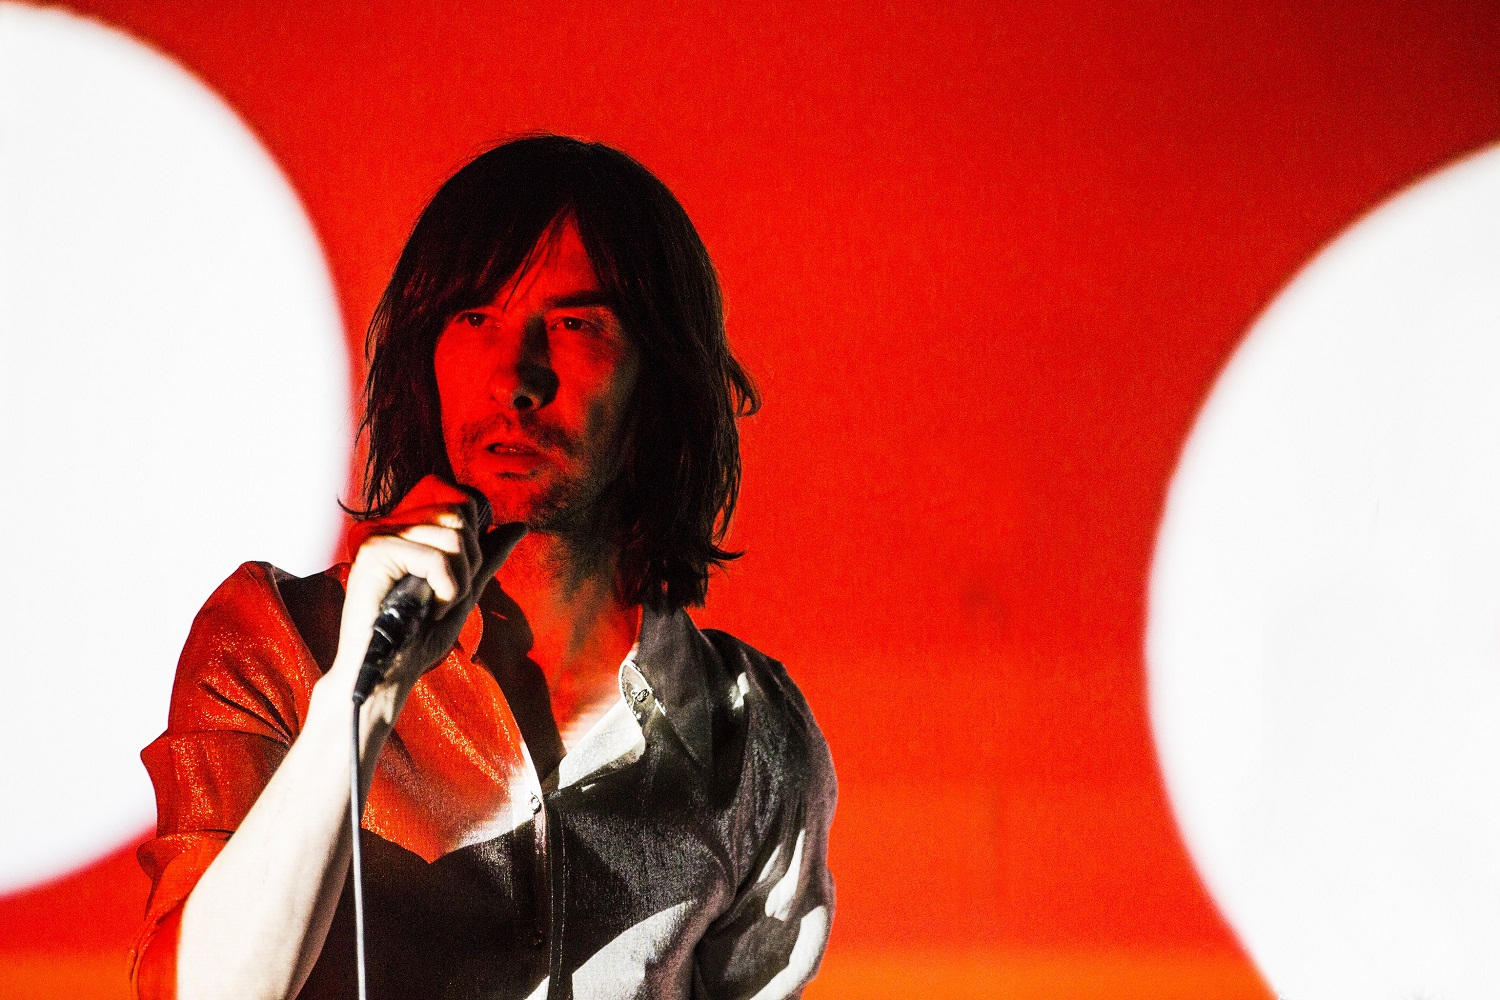 Primal-Scream-Bobby-Gillespie-colour-1-c-Ignition-Records-2016-edit